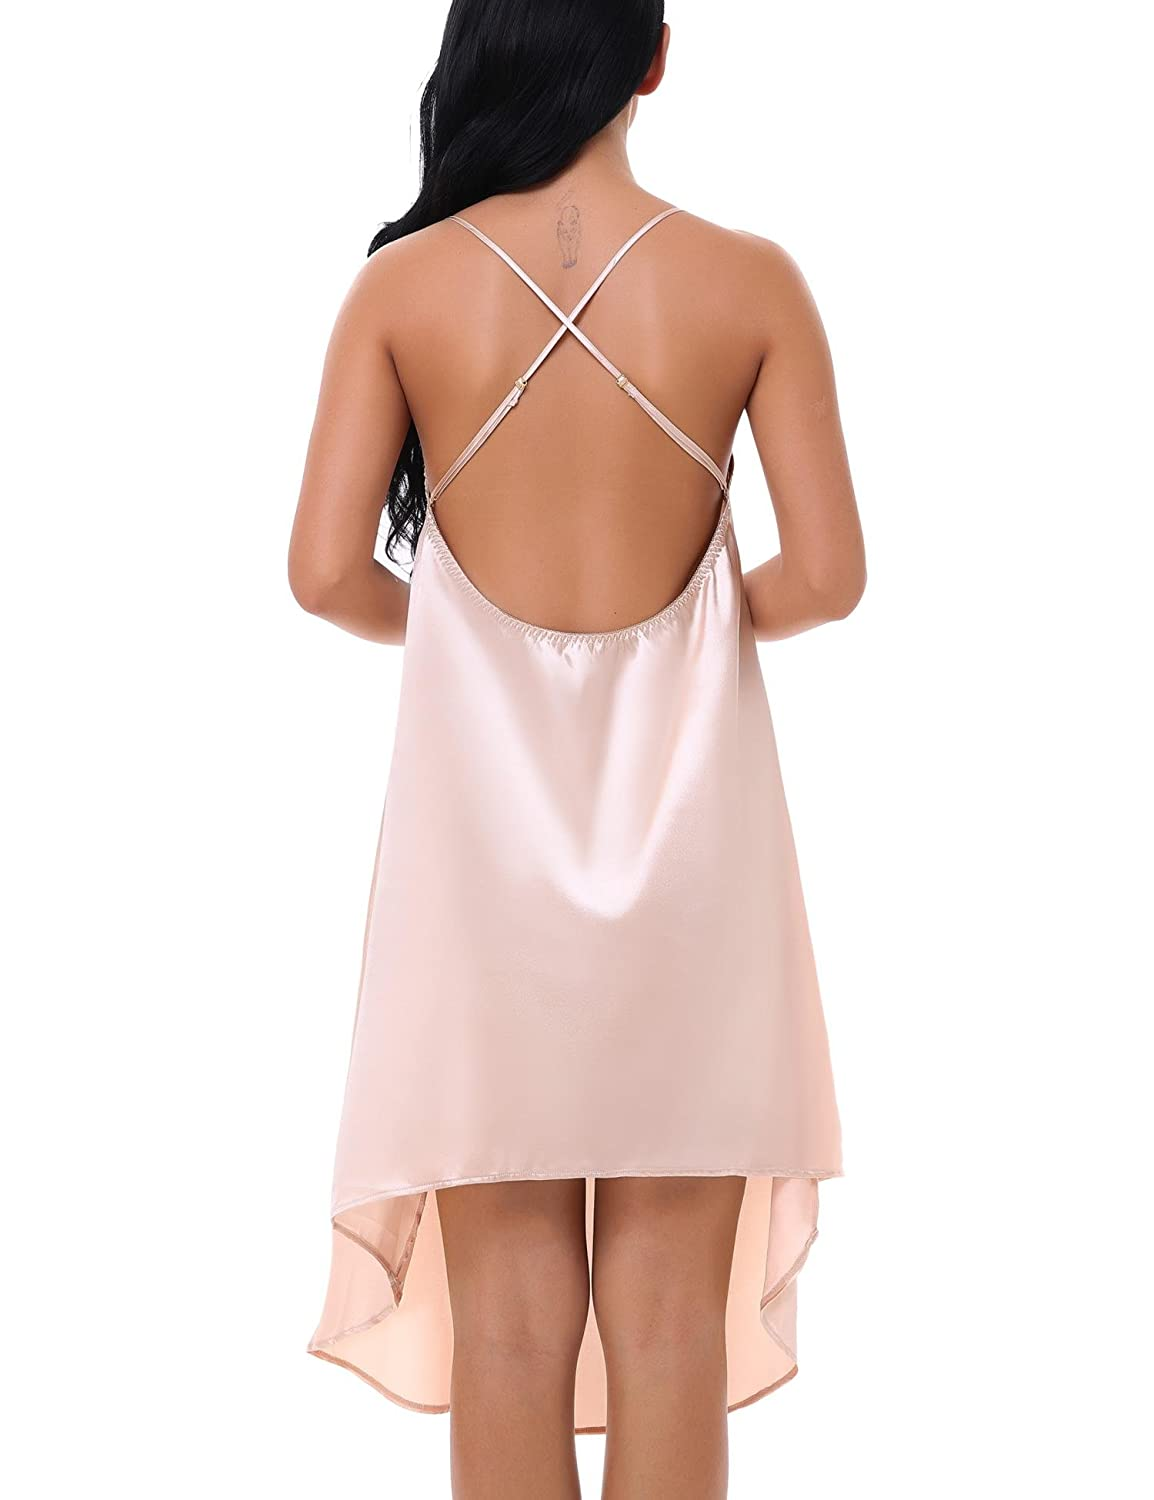 a200bf445b Womens sexy chemise lingerie satin sleepwear features sexy neckline